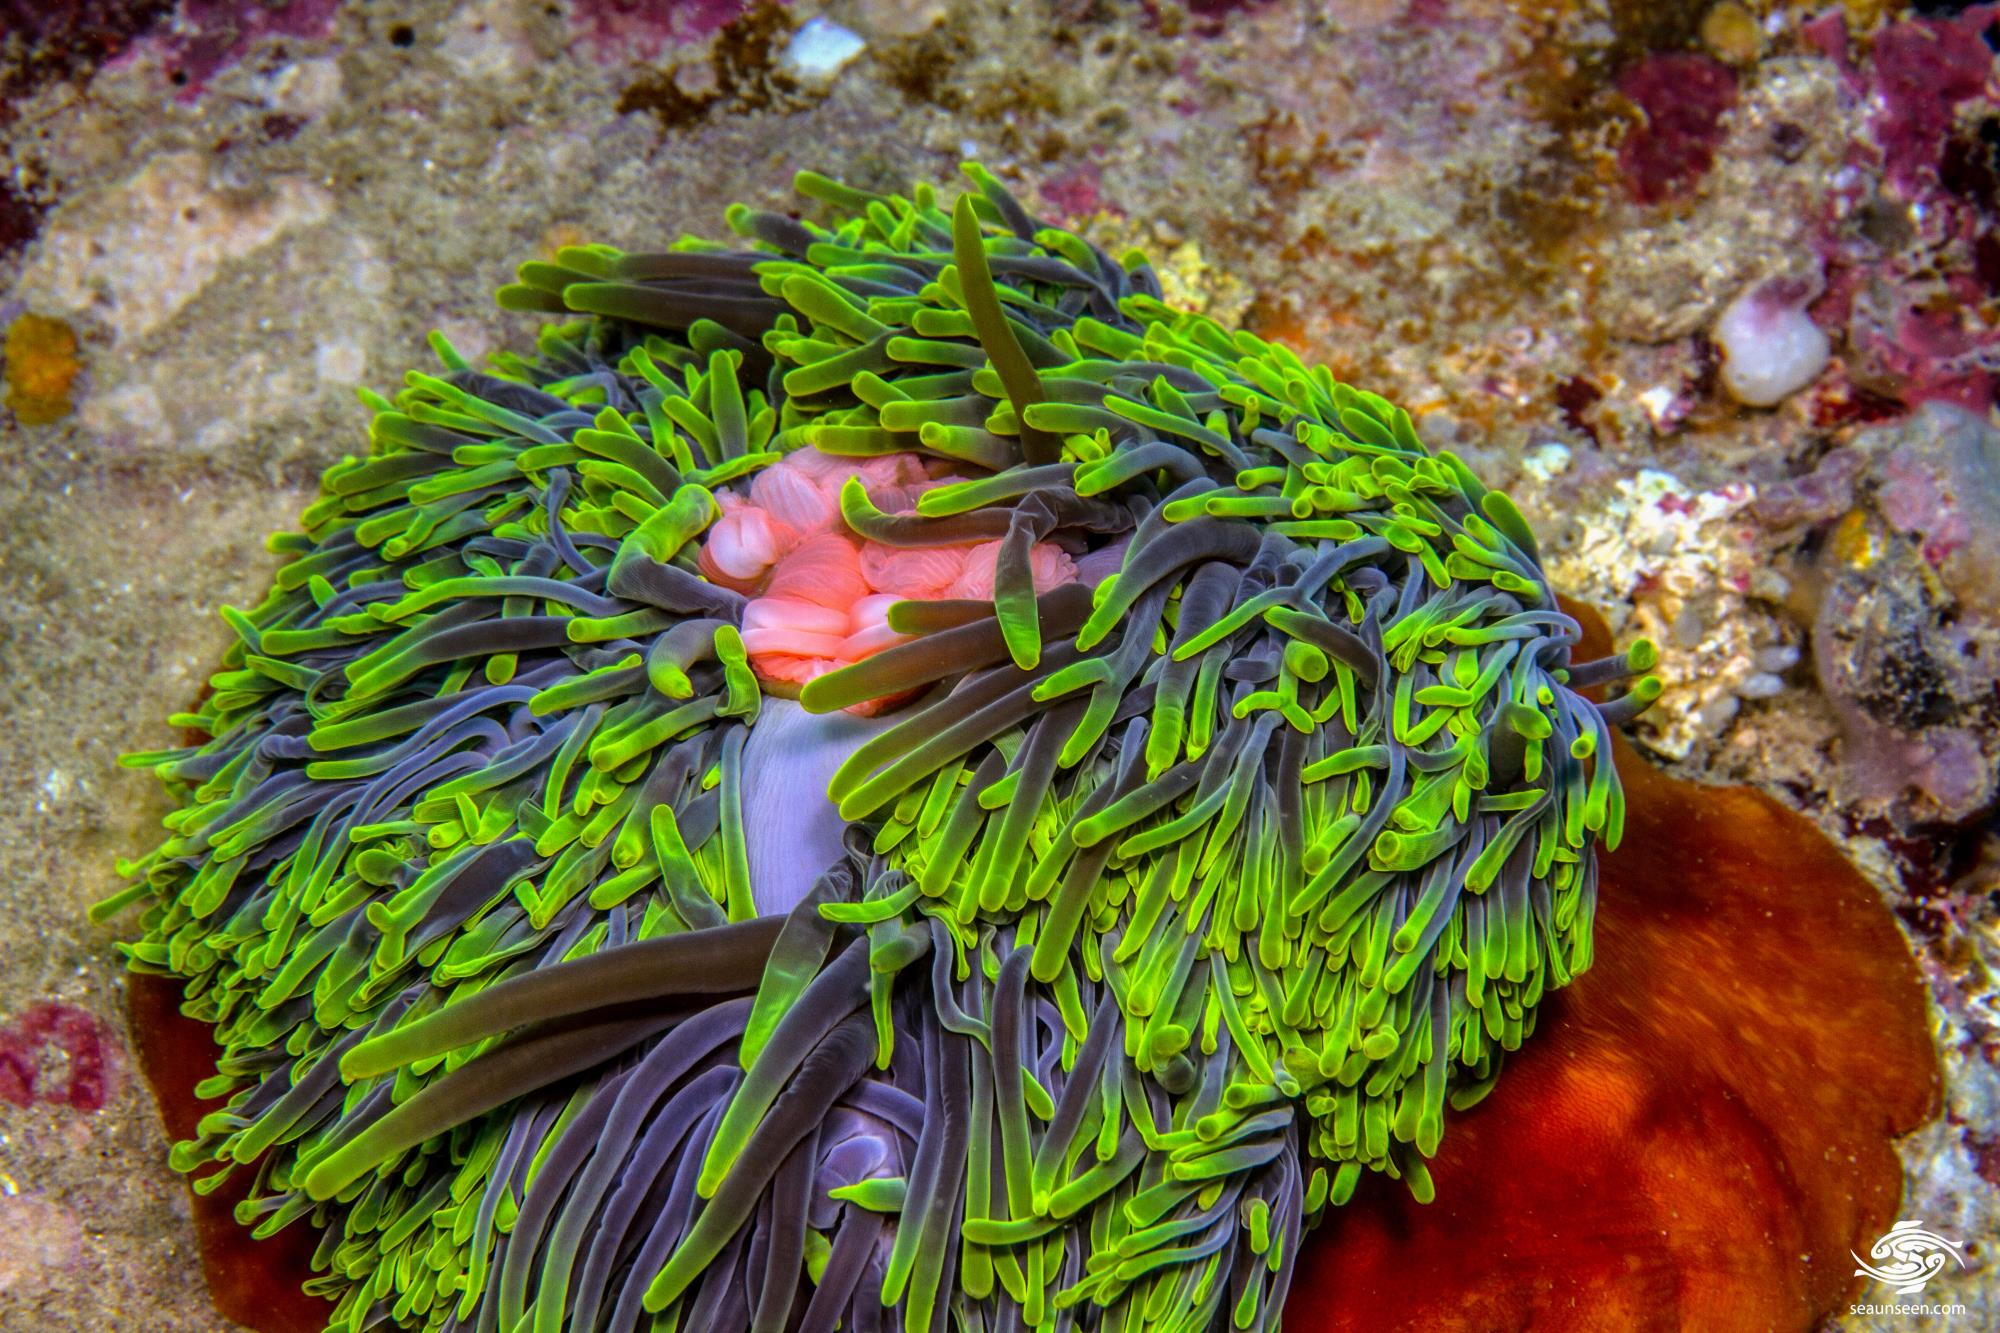 Bubble Tip Anemone (entacmaea quadricolor) with stomach distended